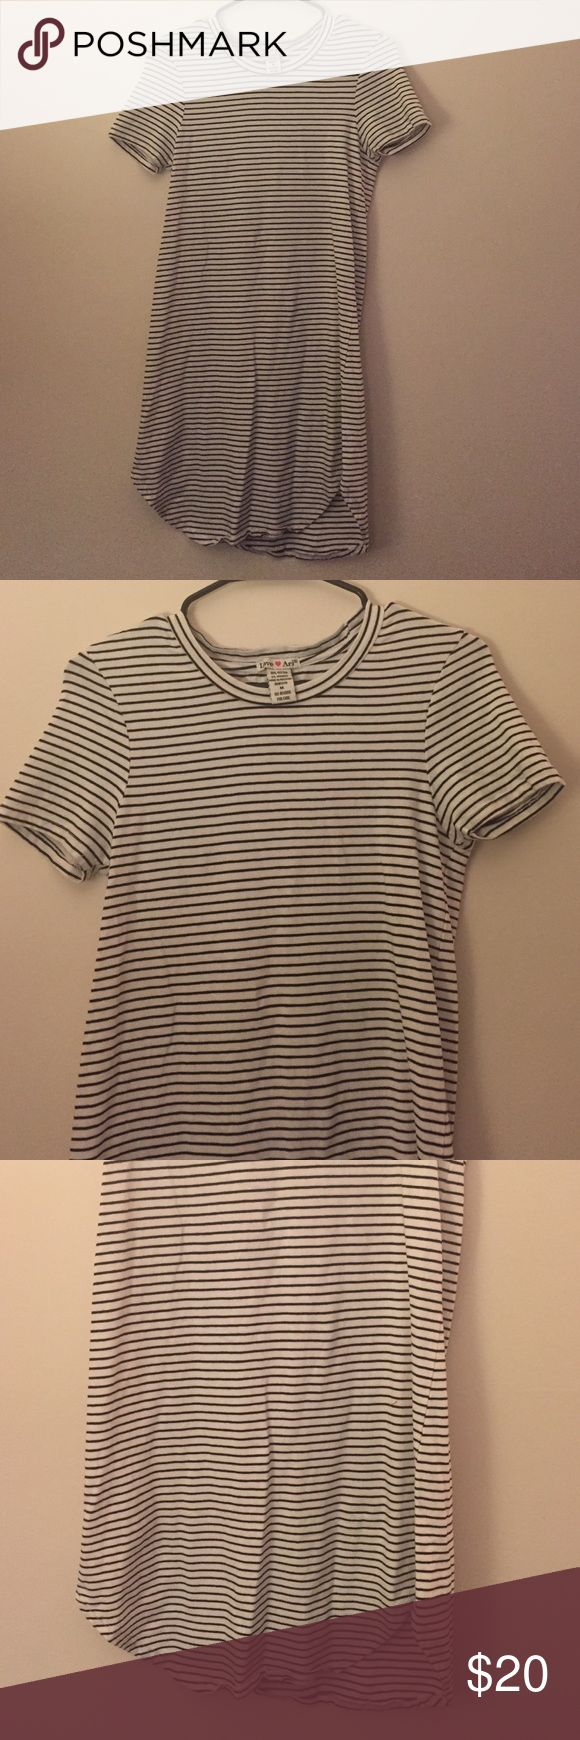 Striped T-Shirt Dress Striped T-Shirt Dress, size medium. NWOT. Looks perfect with boots and a sweater! Dresses Mini